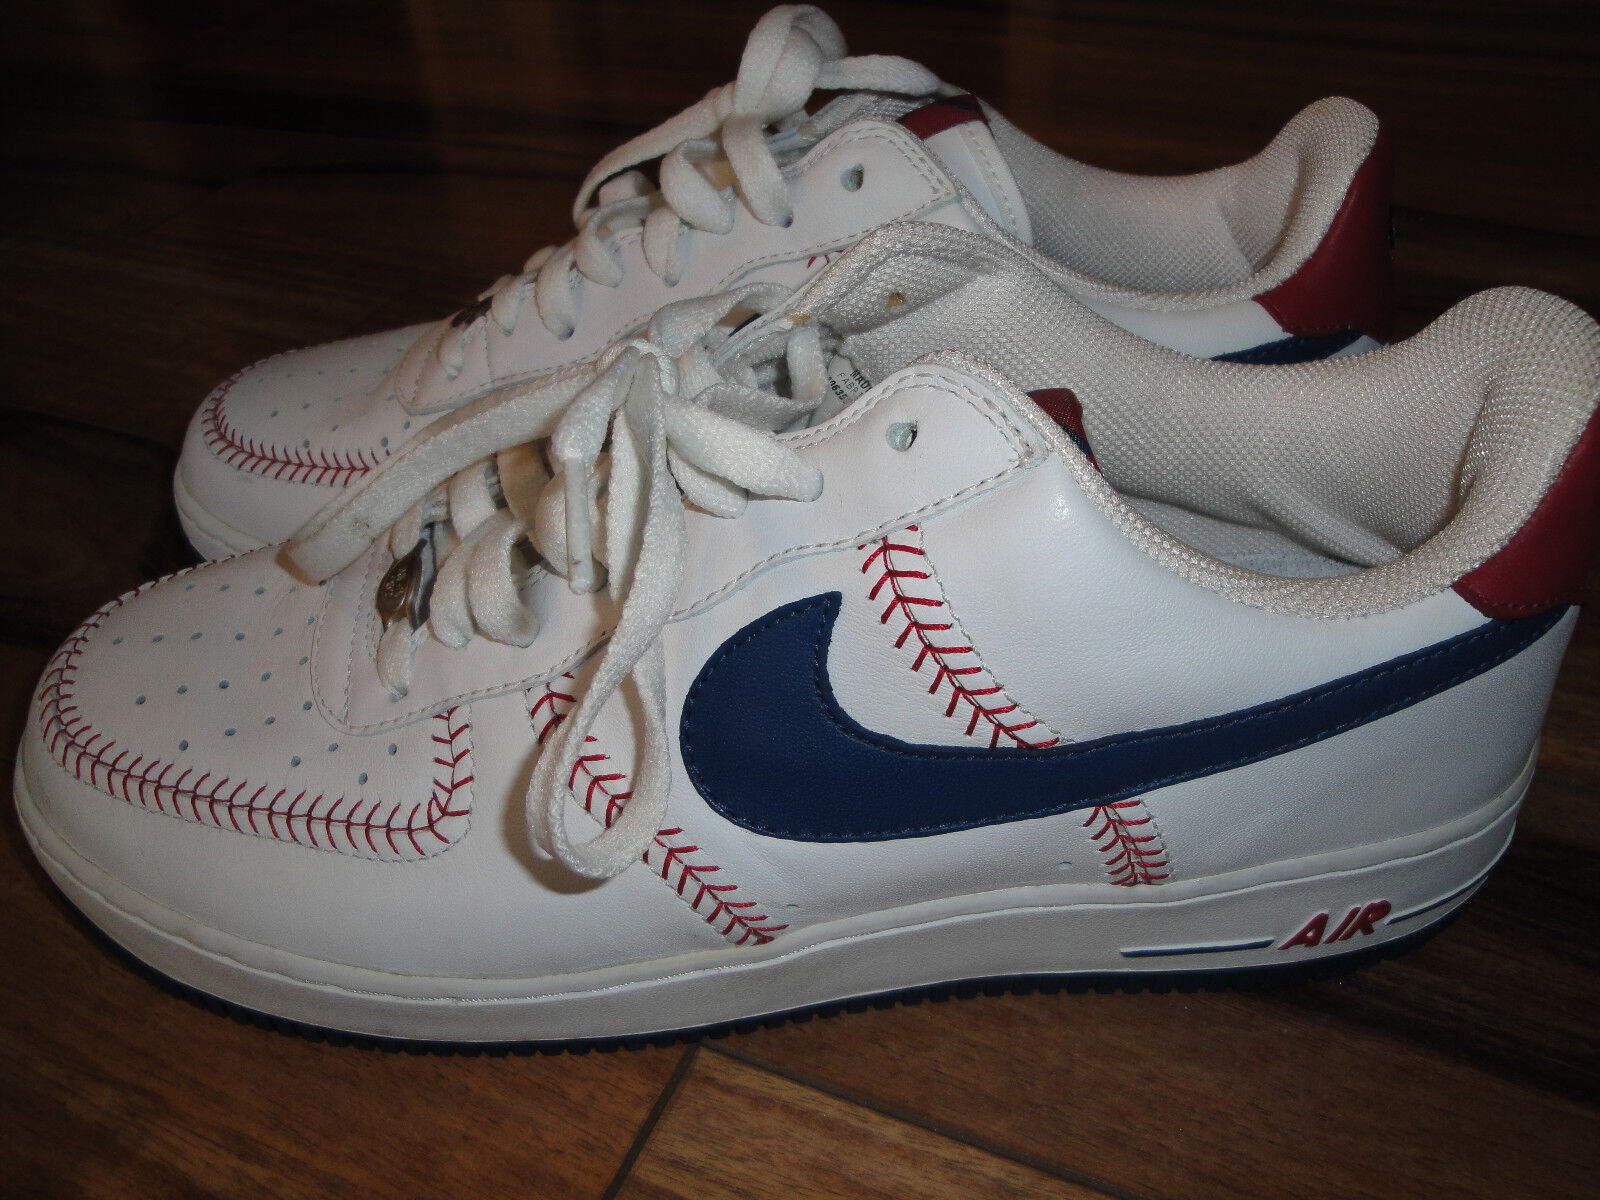 Nike Air del Force 1 Mlb ciudad del Air frijol Talle 10.5 Style Boston Red Sox c2a5e6